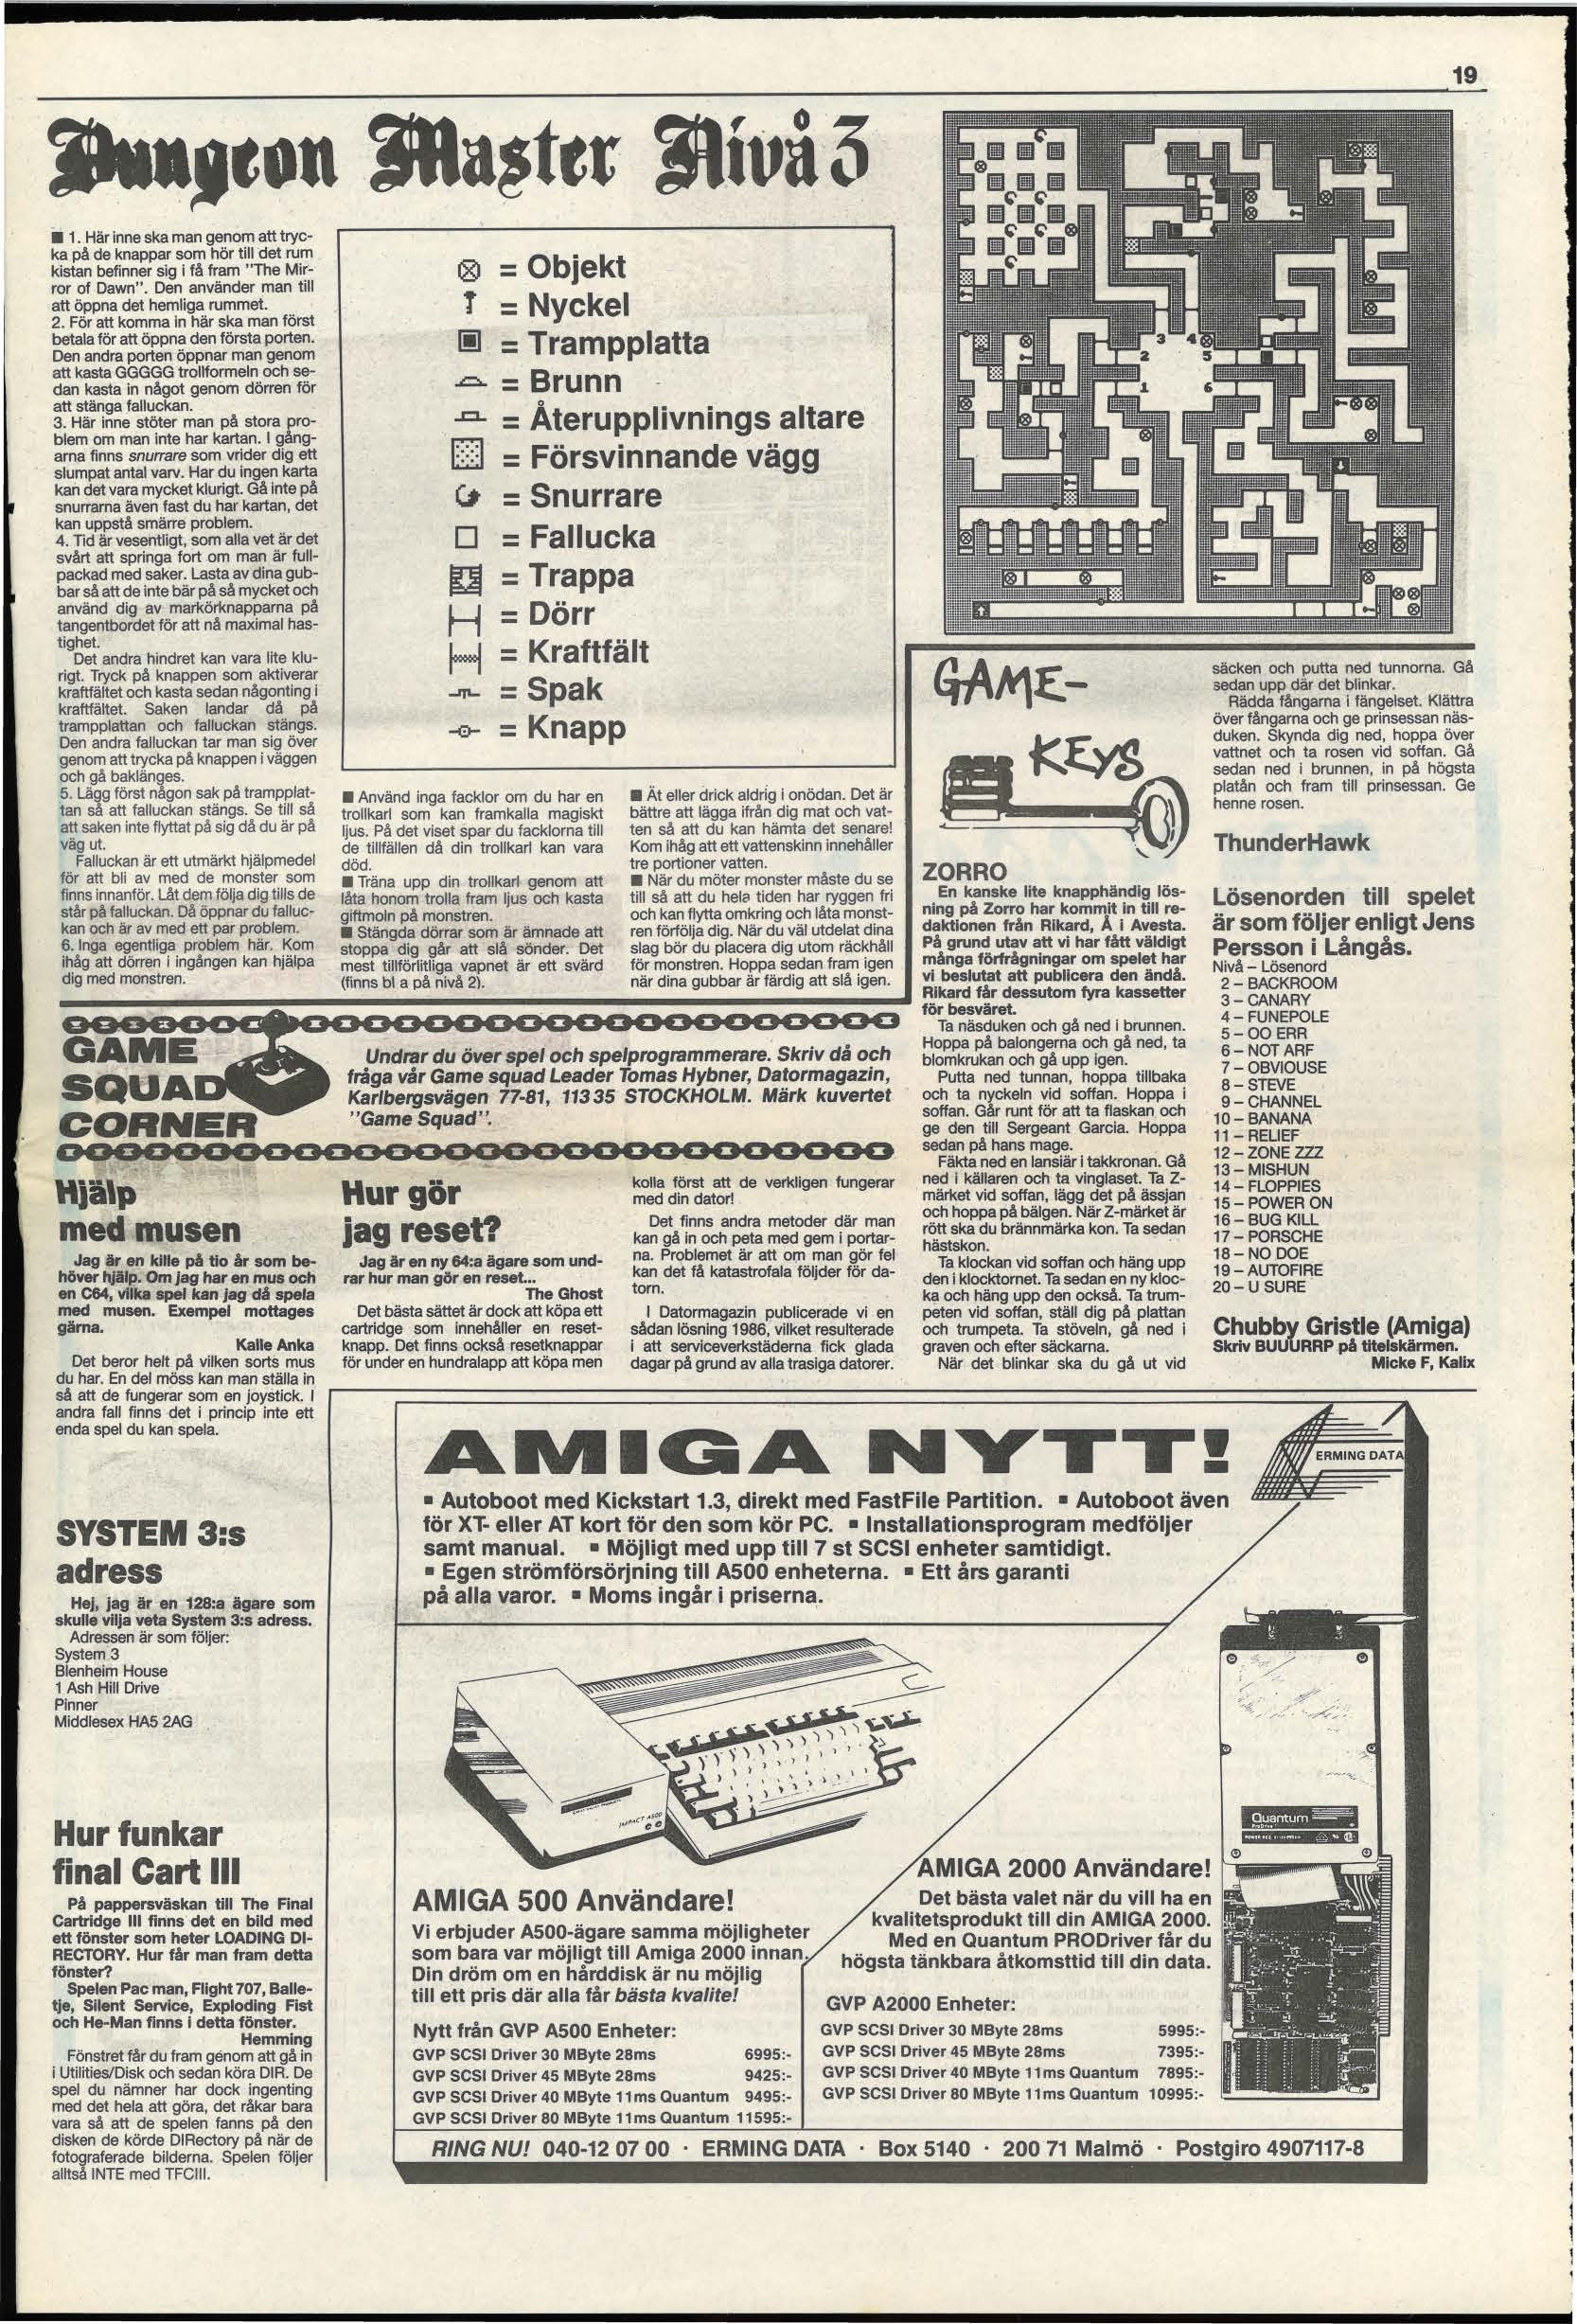 Dungeon Master Hints published in Swedish magazine 'Datormagazin', Vol 1989 No 5 April 1989, Page 19